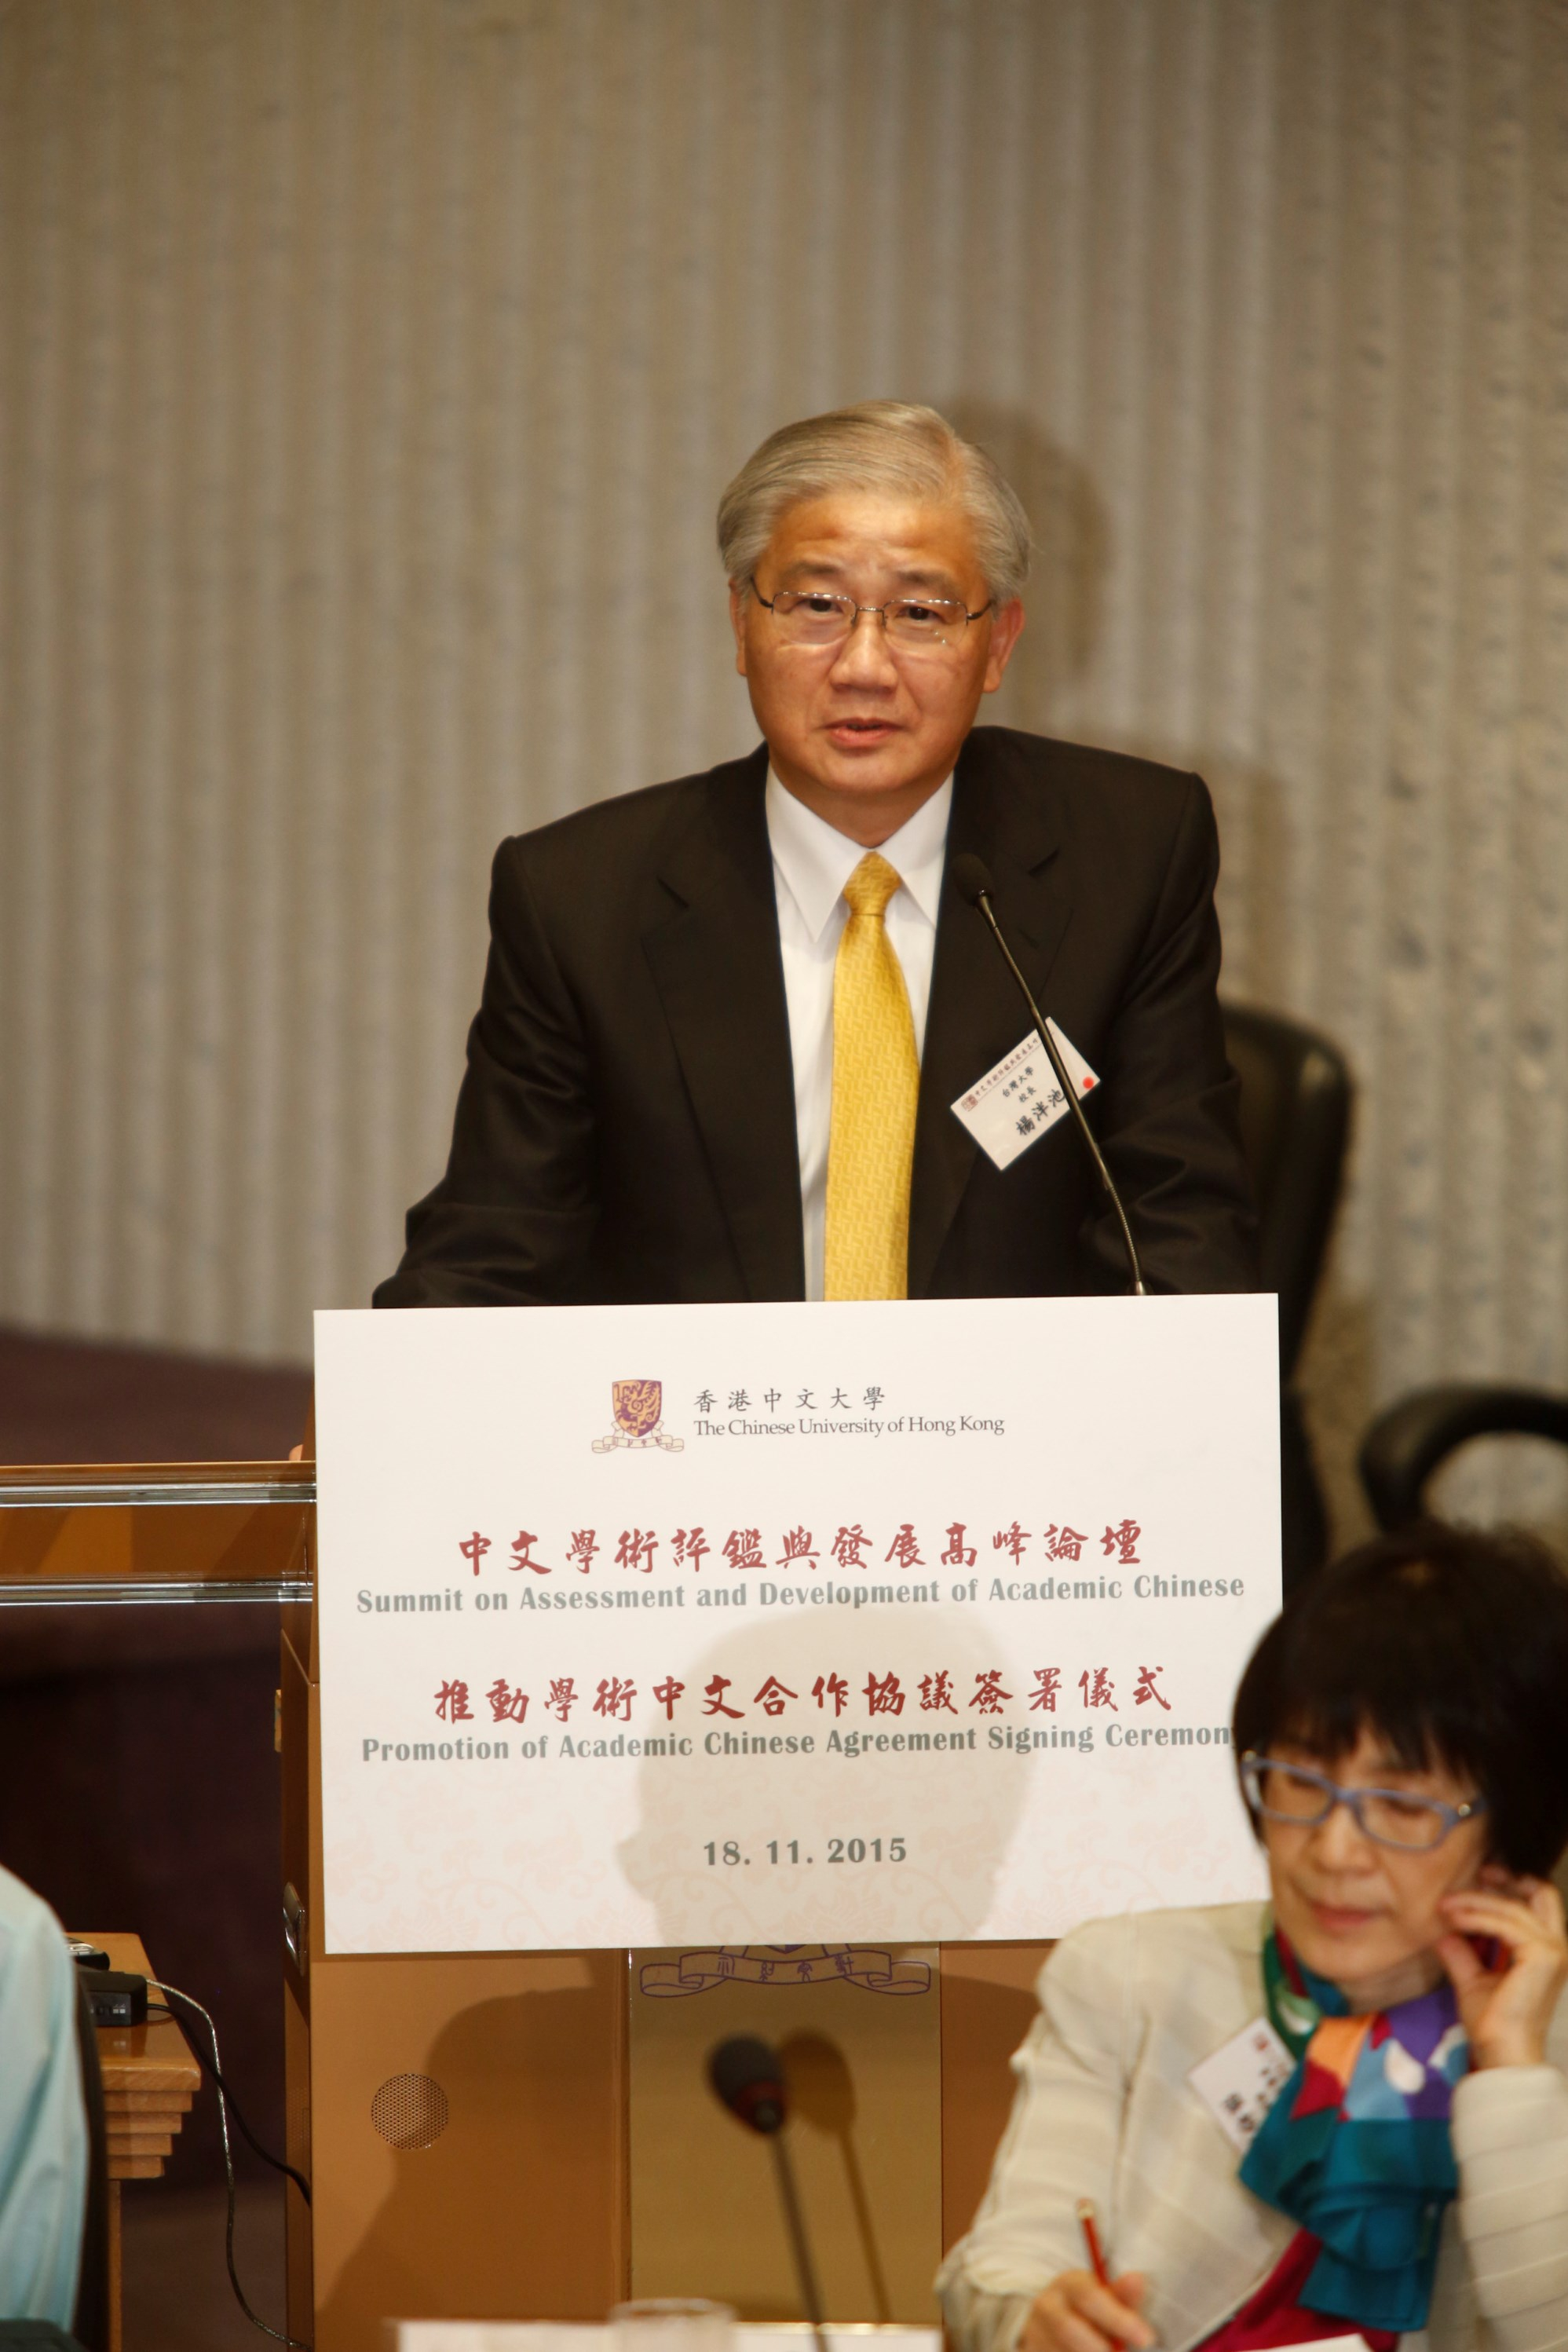 Prof. Pan-Chyr Yang, President of Taiwan University, one of the initiating universities, delivers a speech.